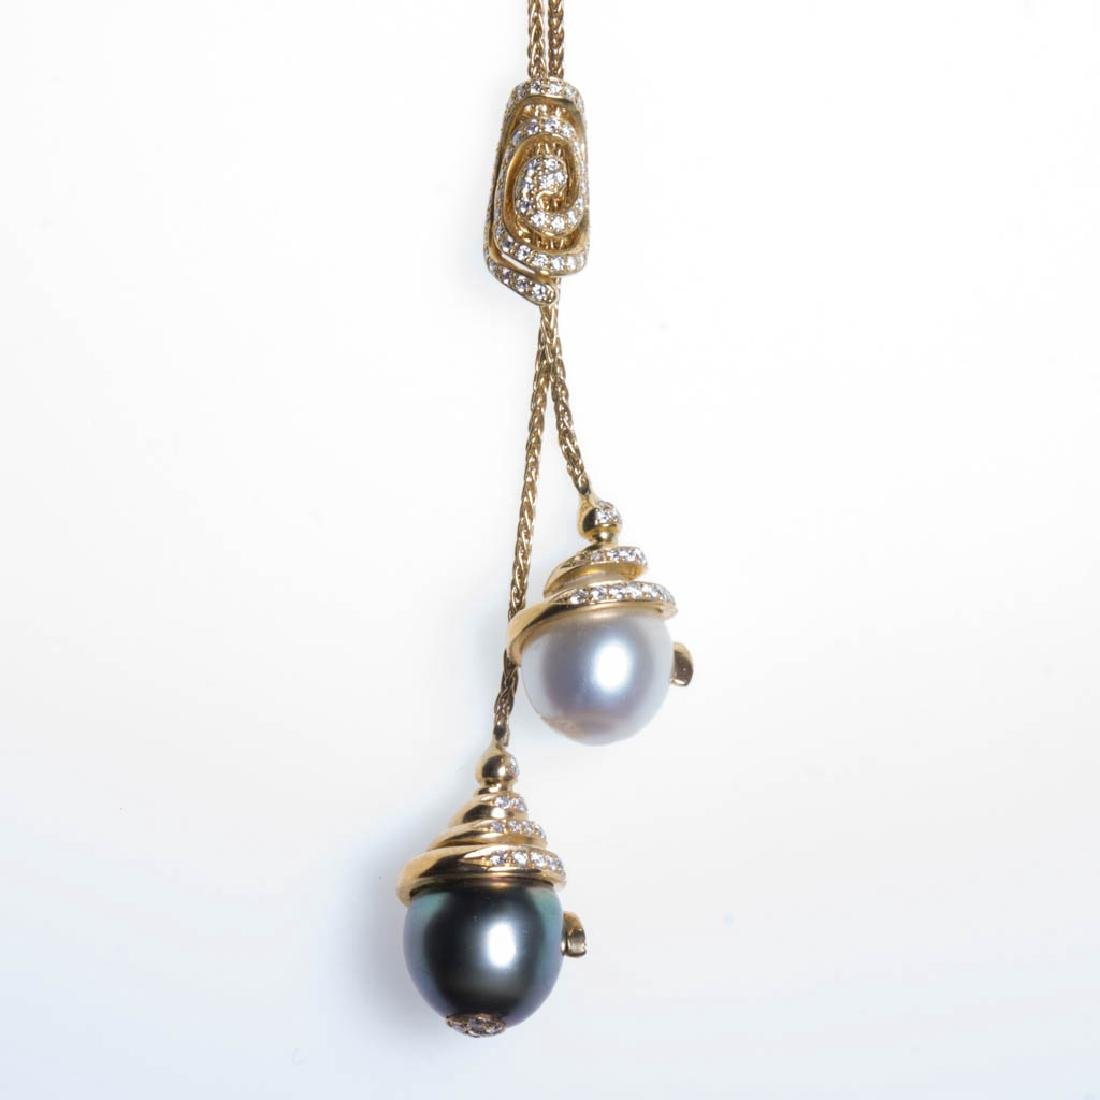 YVEL 18K GOLD, DIAMOND, AND PEARL NECKLACE